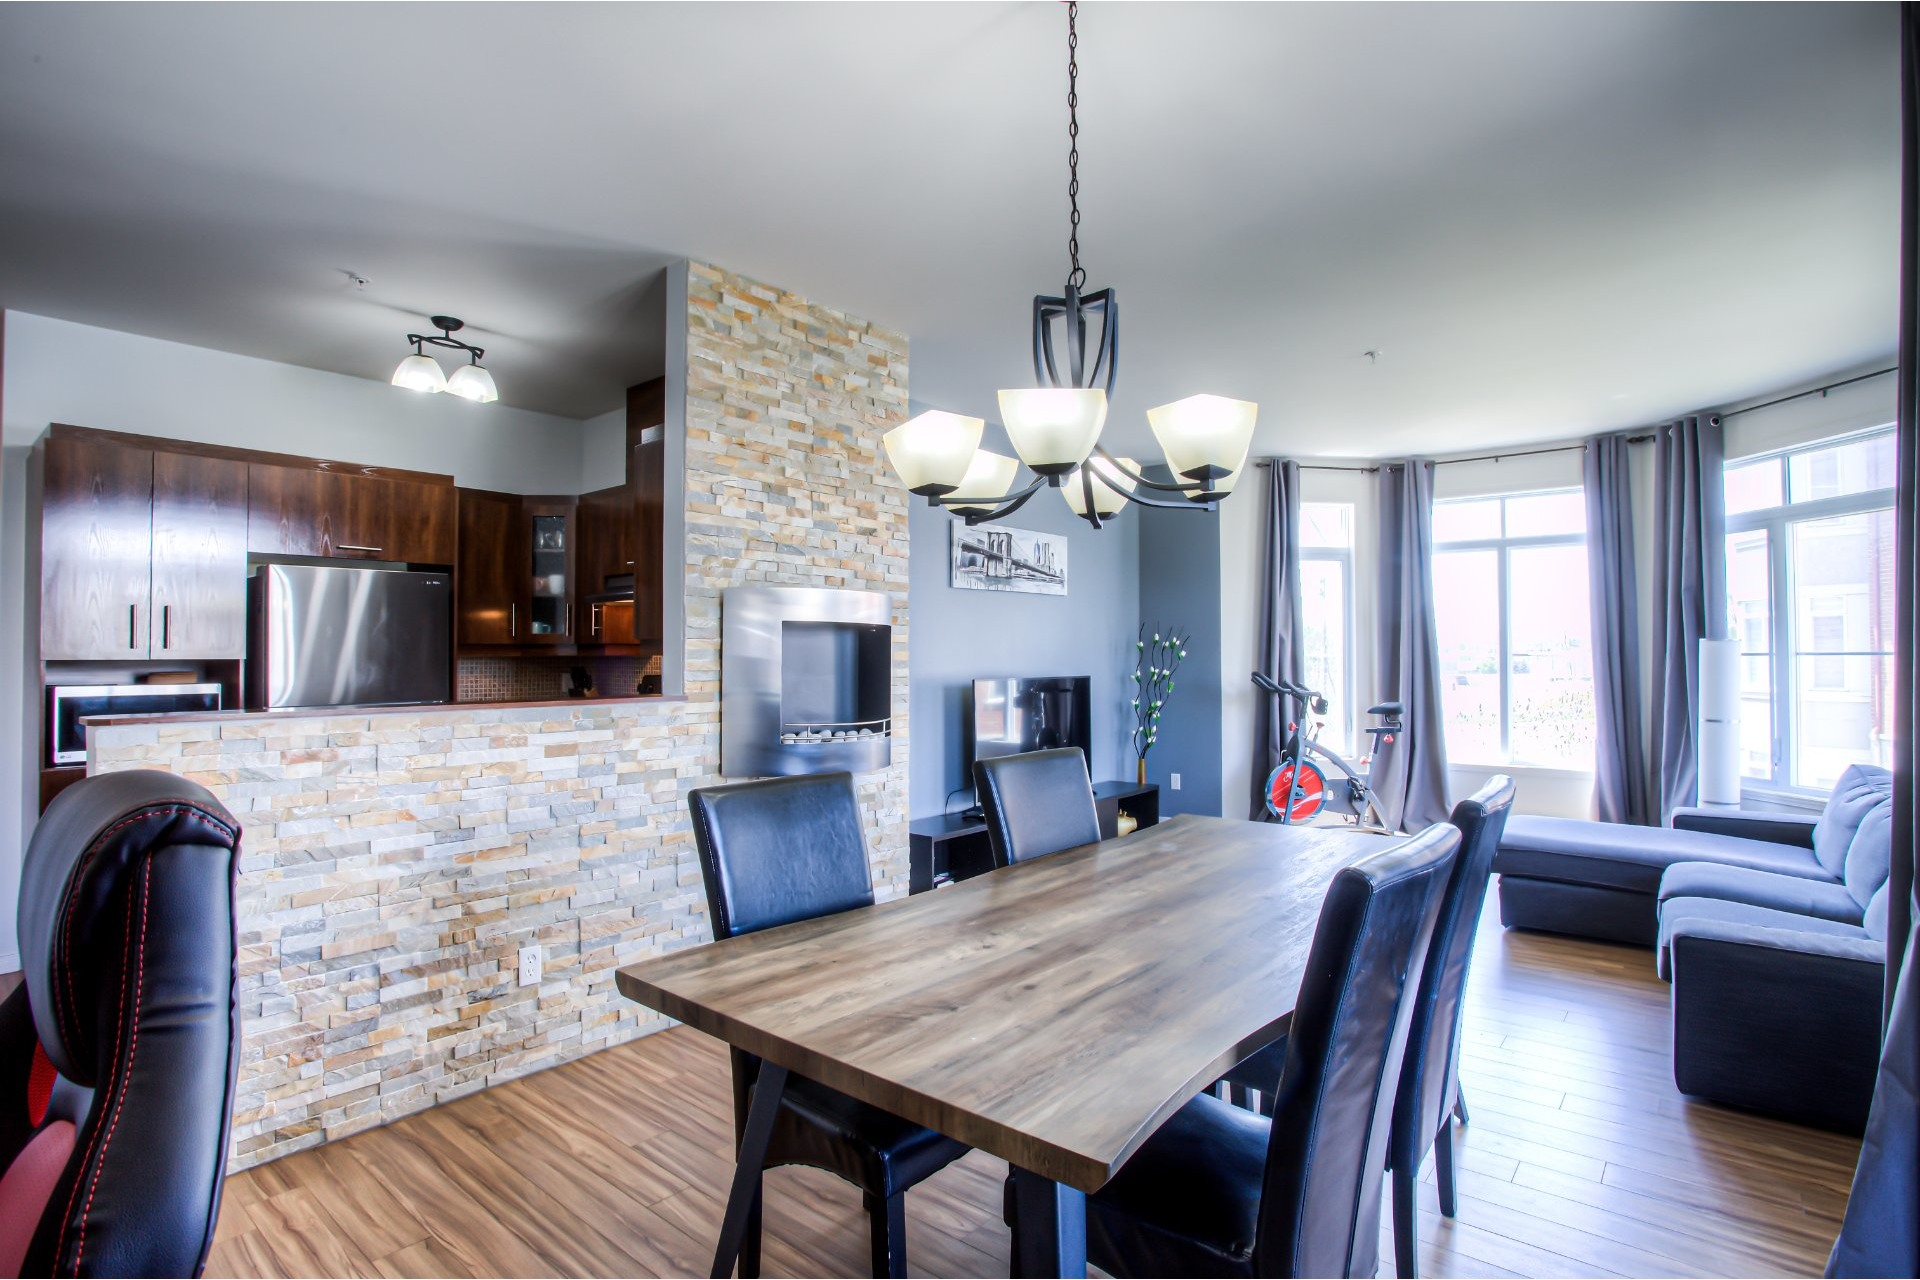 image 5 - Apartment For sale Mascouche - 8 rooms